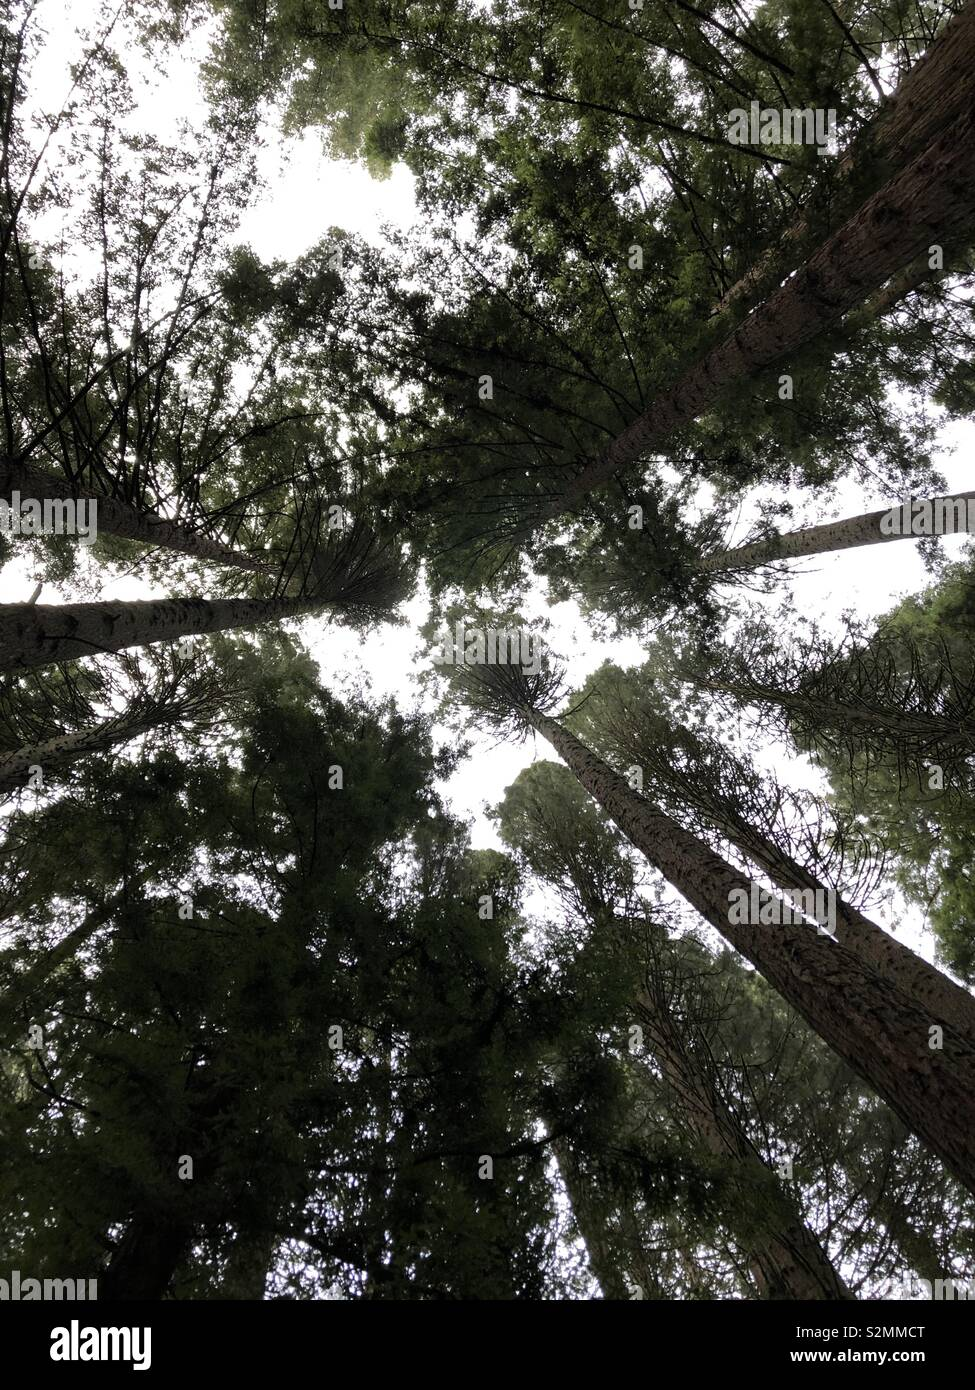 Redwoods - Stock Image